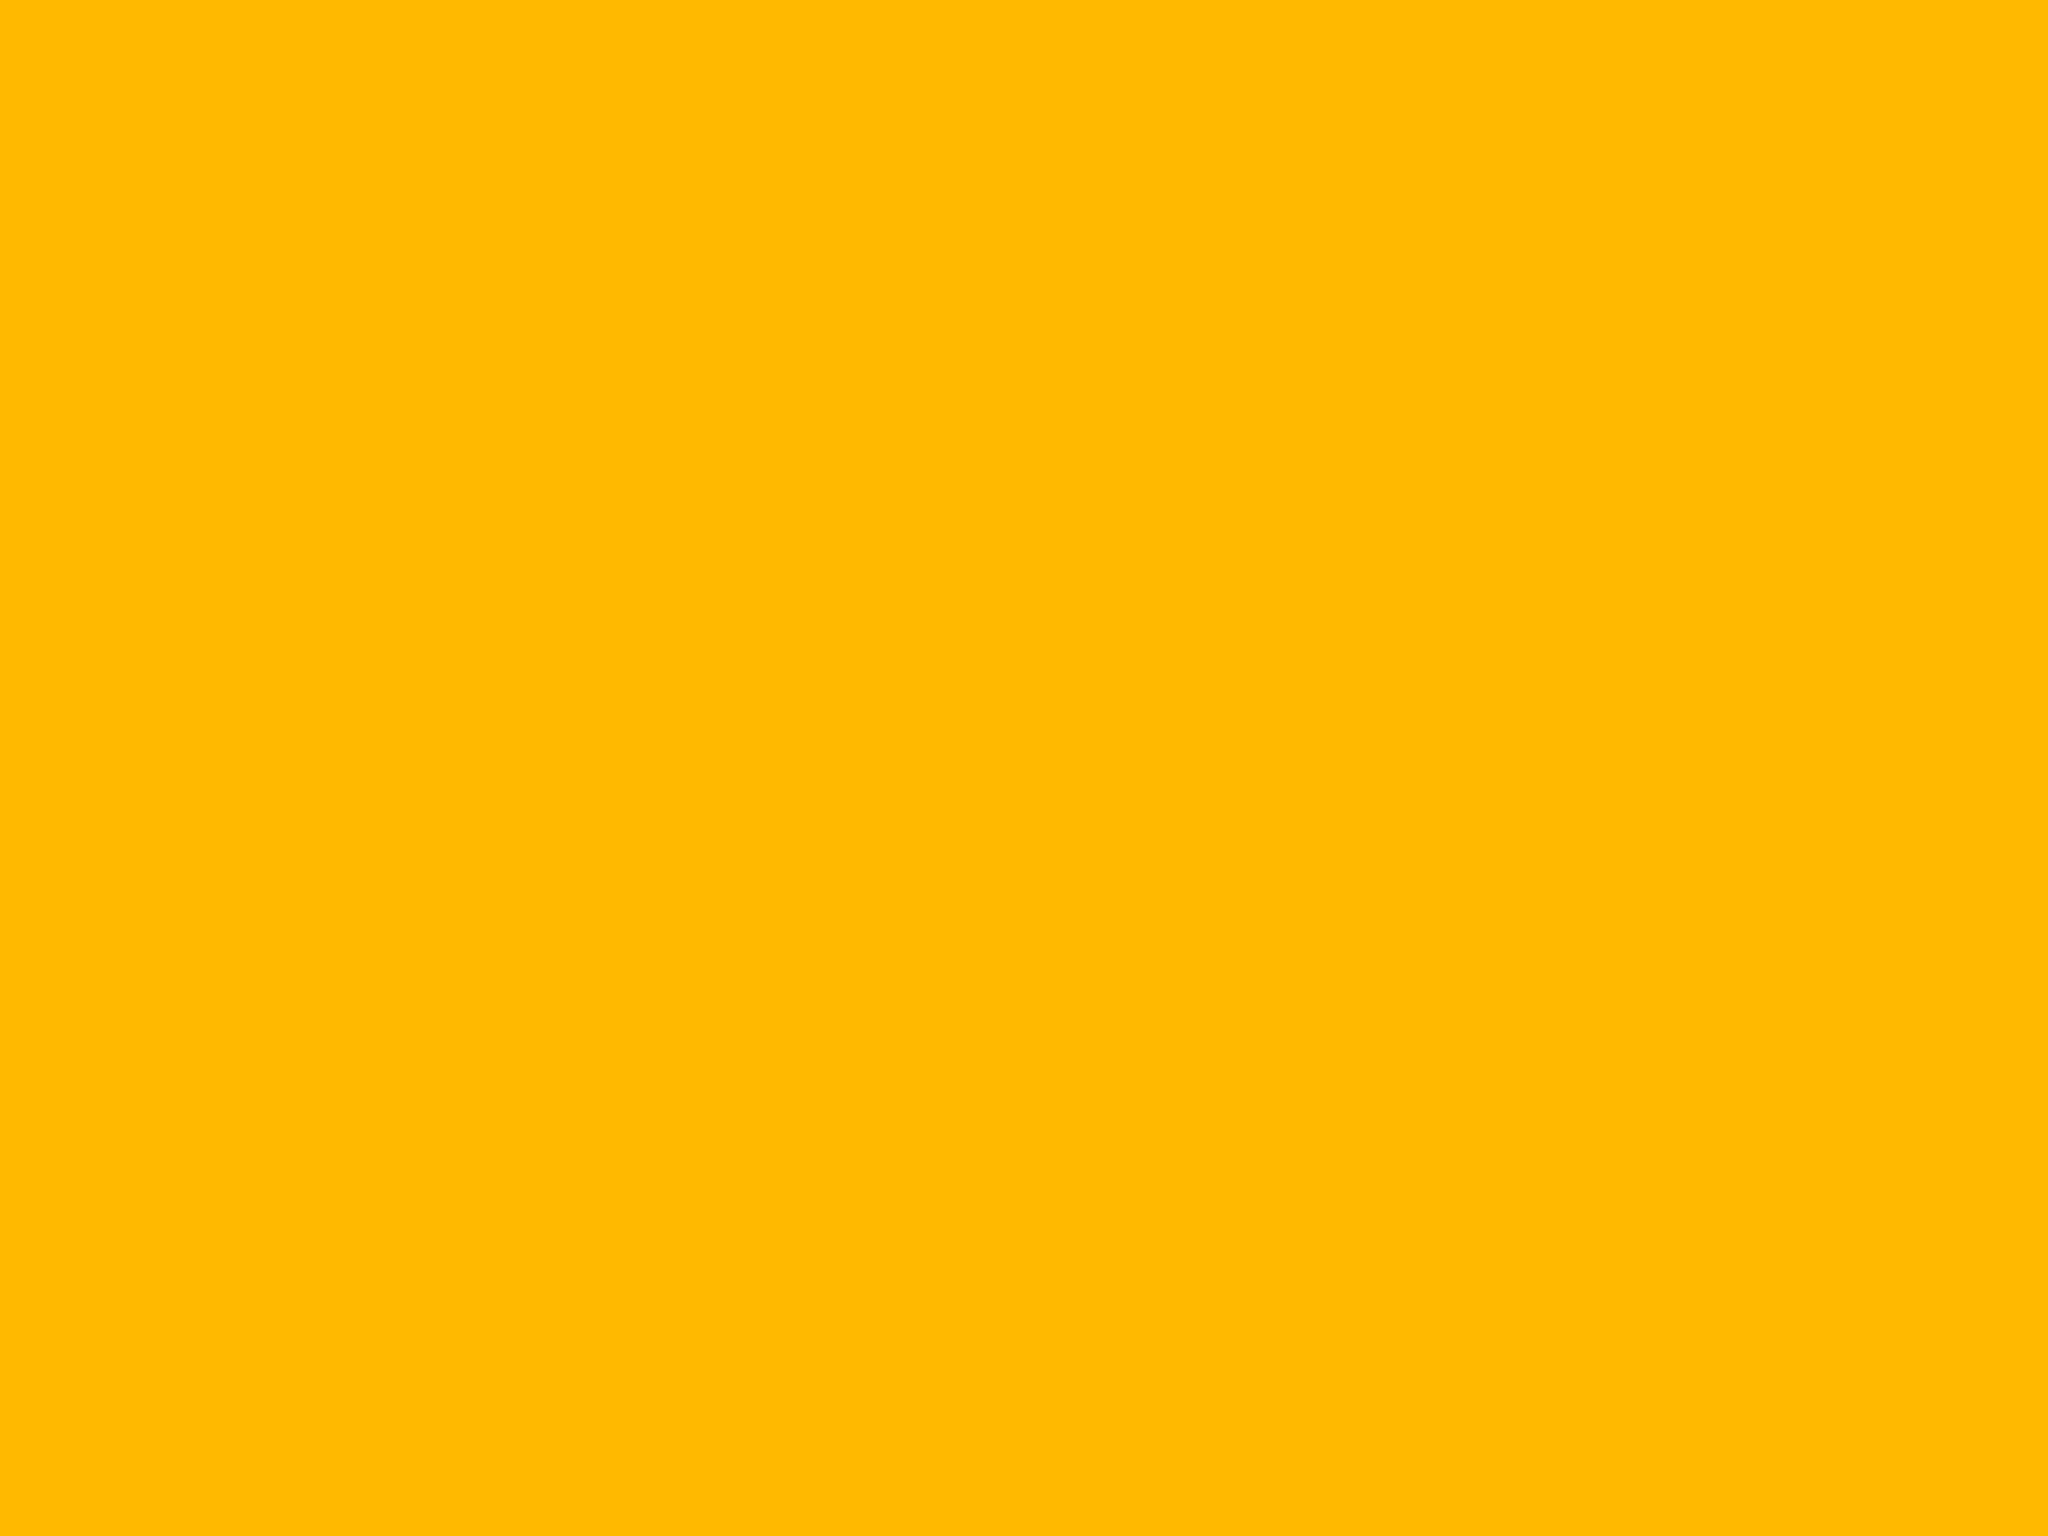 2048x1536 Selective Yellow Solid Color Background